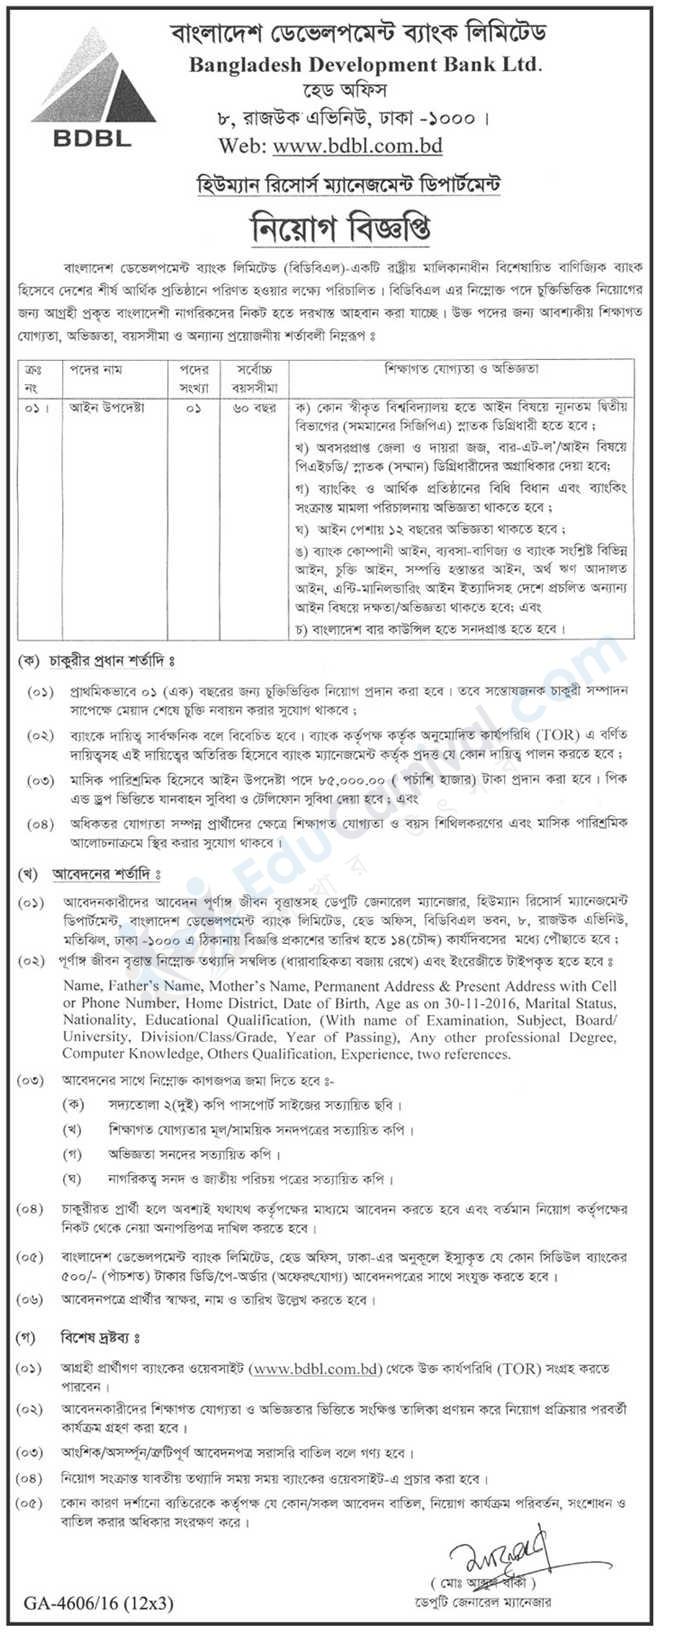 Bangladesh Development Bank Limited Circular 2016